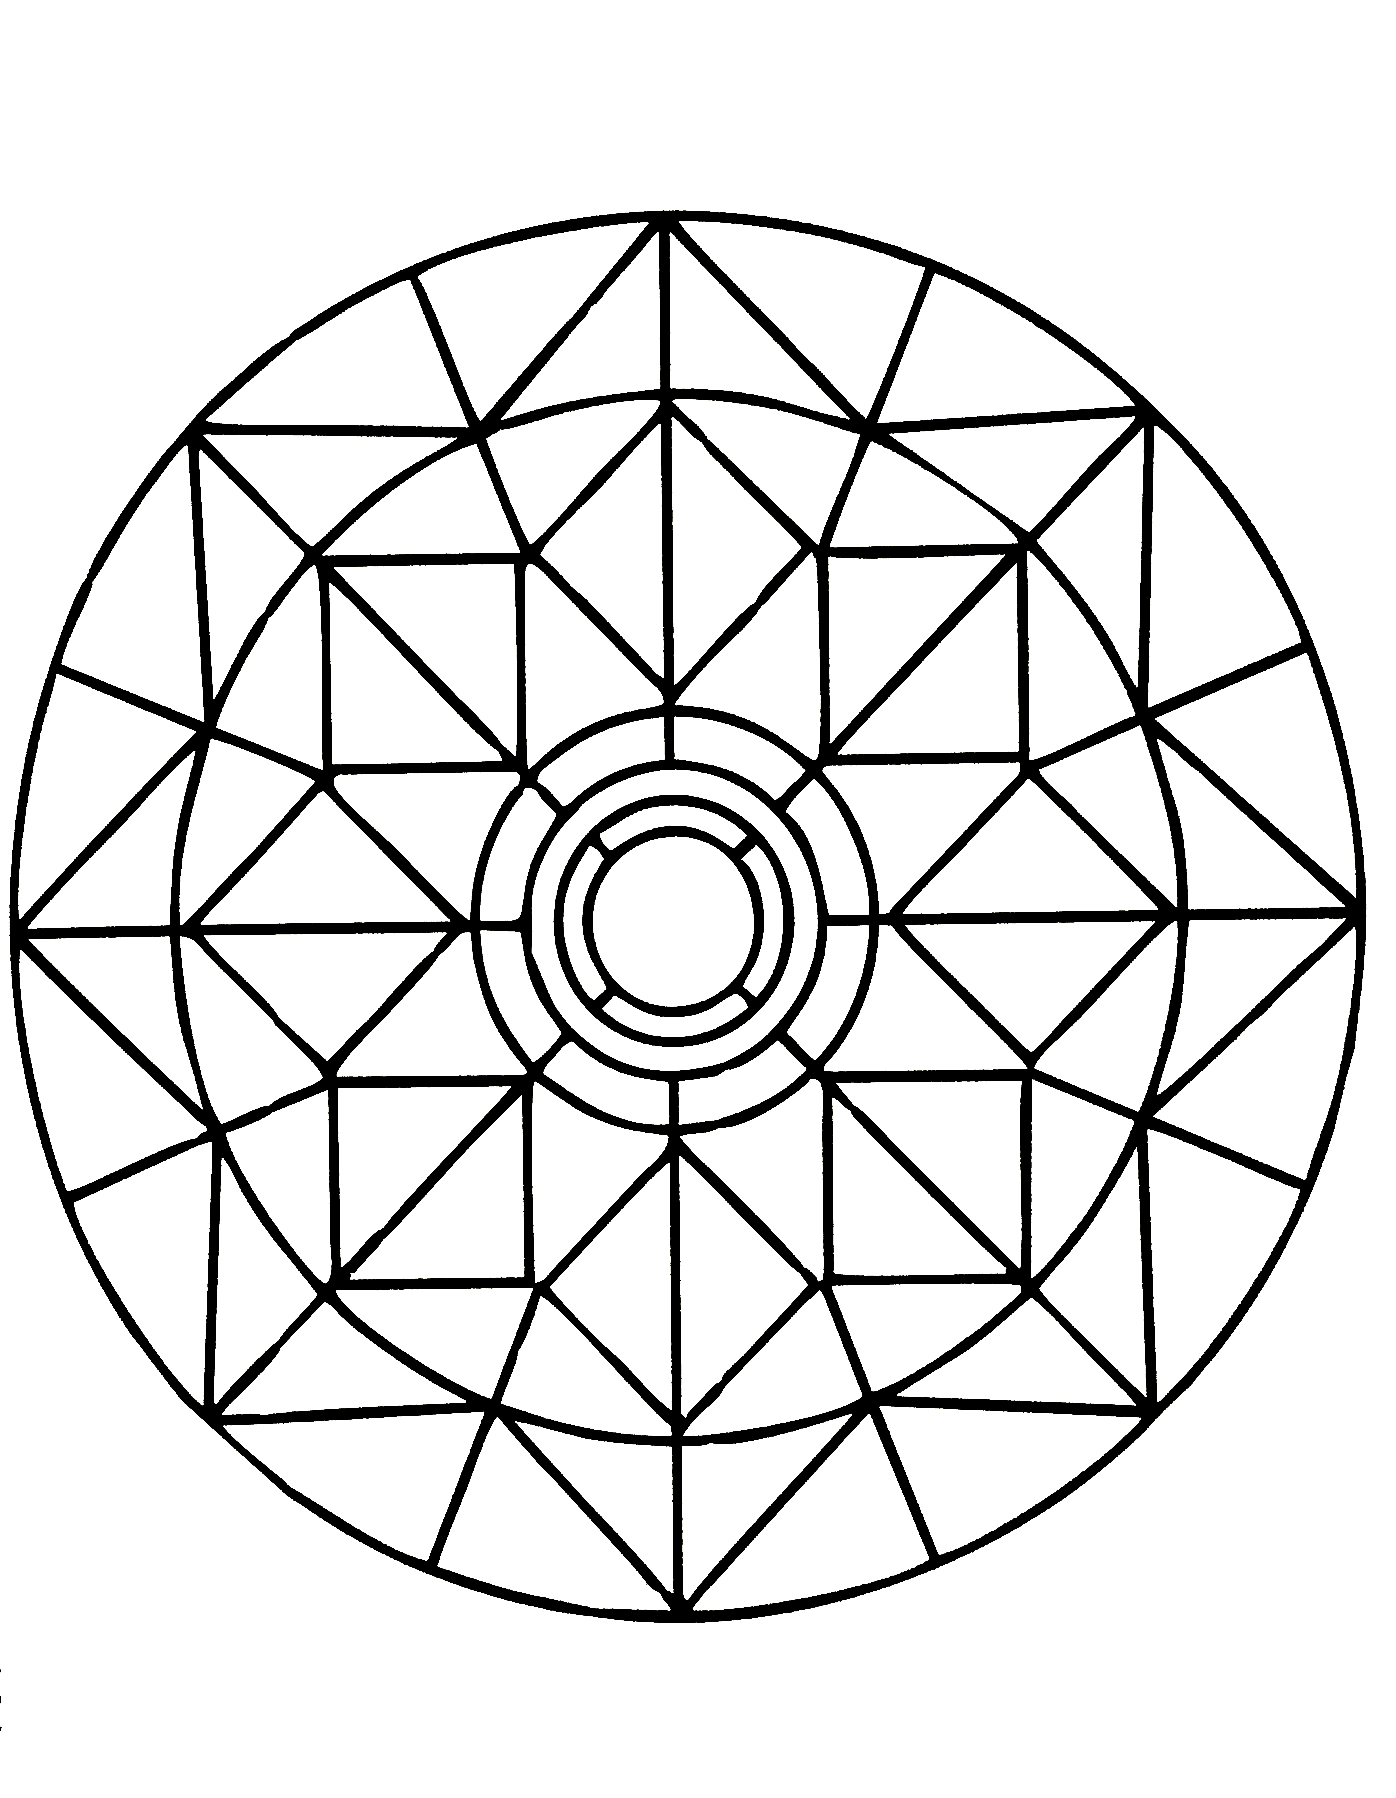 Simple mandala 76 - Mandalas Coloring pages for kids to print & color